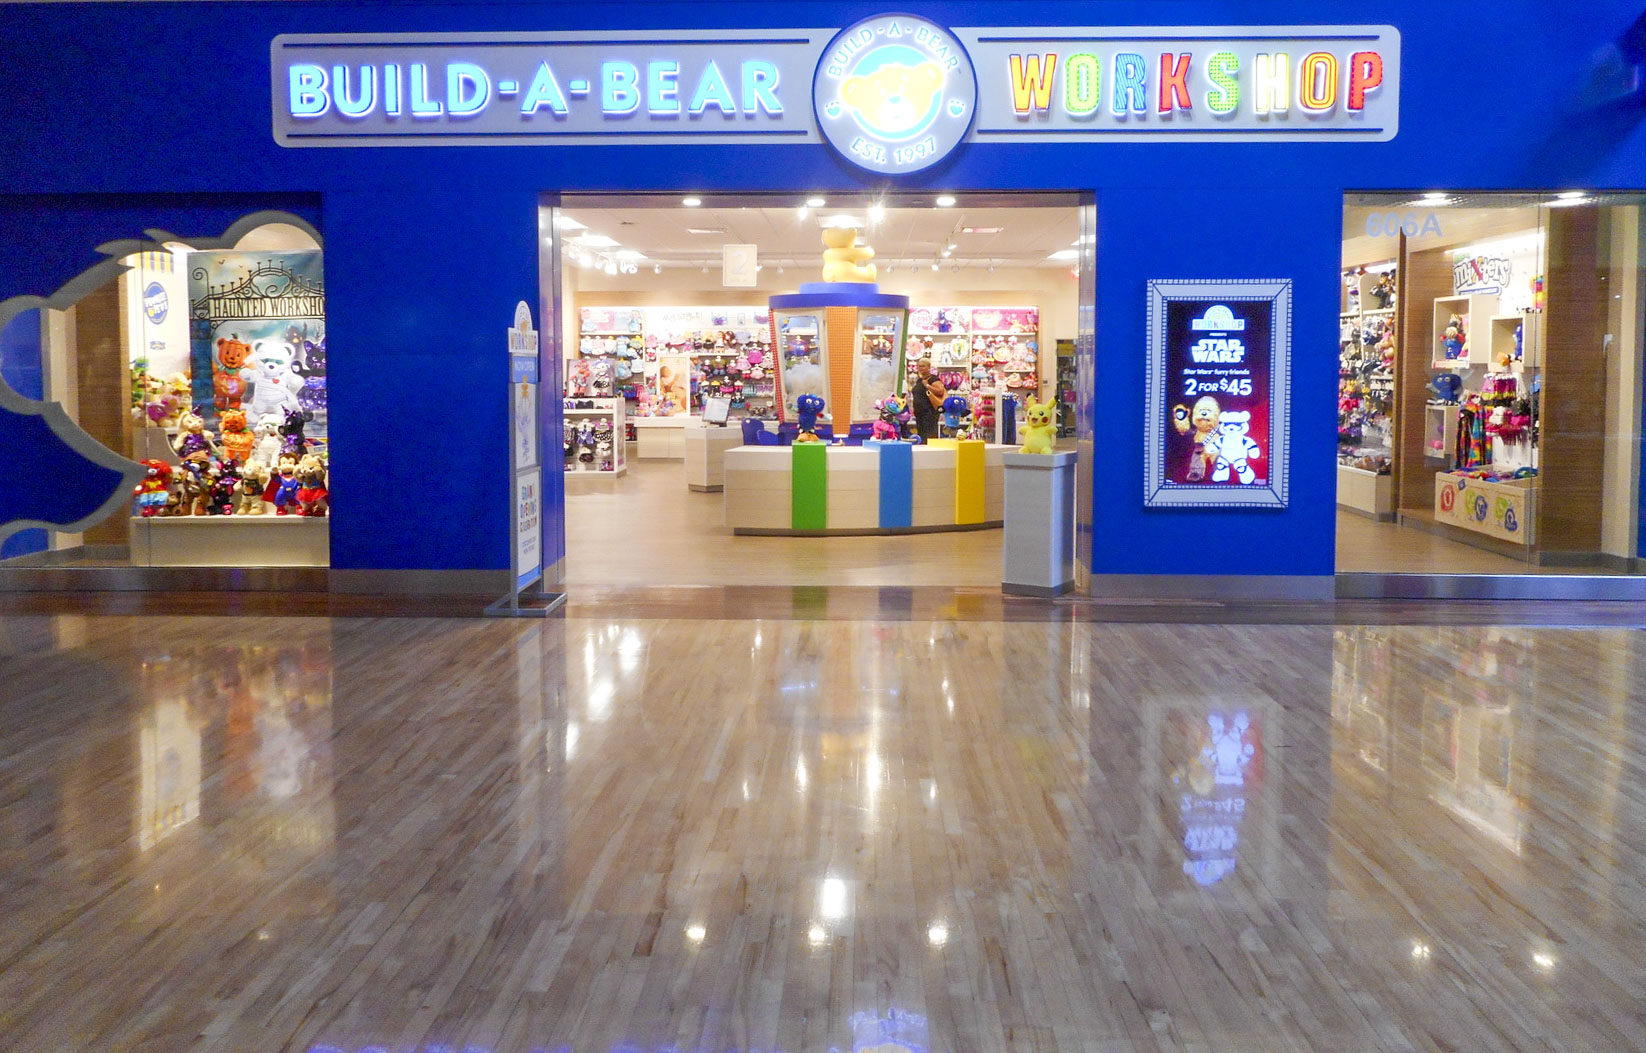 Build-A-Bear Workshop (Katy Mills)